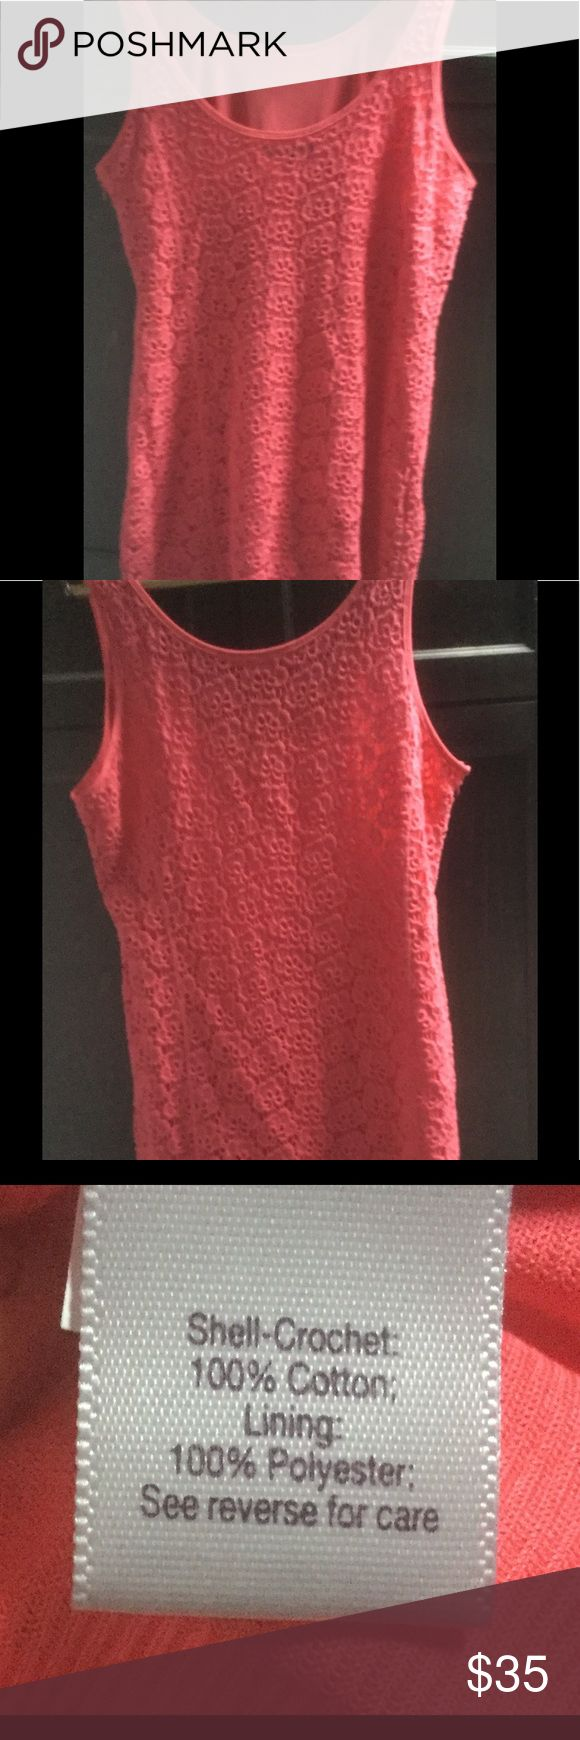 "Coral lace dress Cute fully lined coral lace dress, NWOT never worn. Measures 36"" from shoulder seam to hem. Armpit to armpit measures 19"" . Hits just at the knee. Jennifer Lopez Dresses Midi"